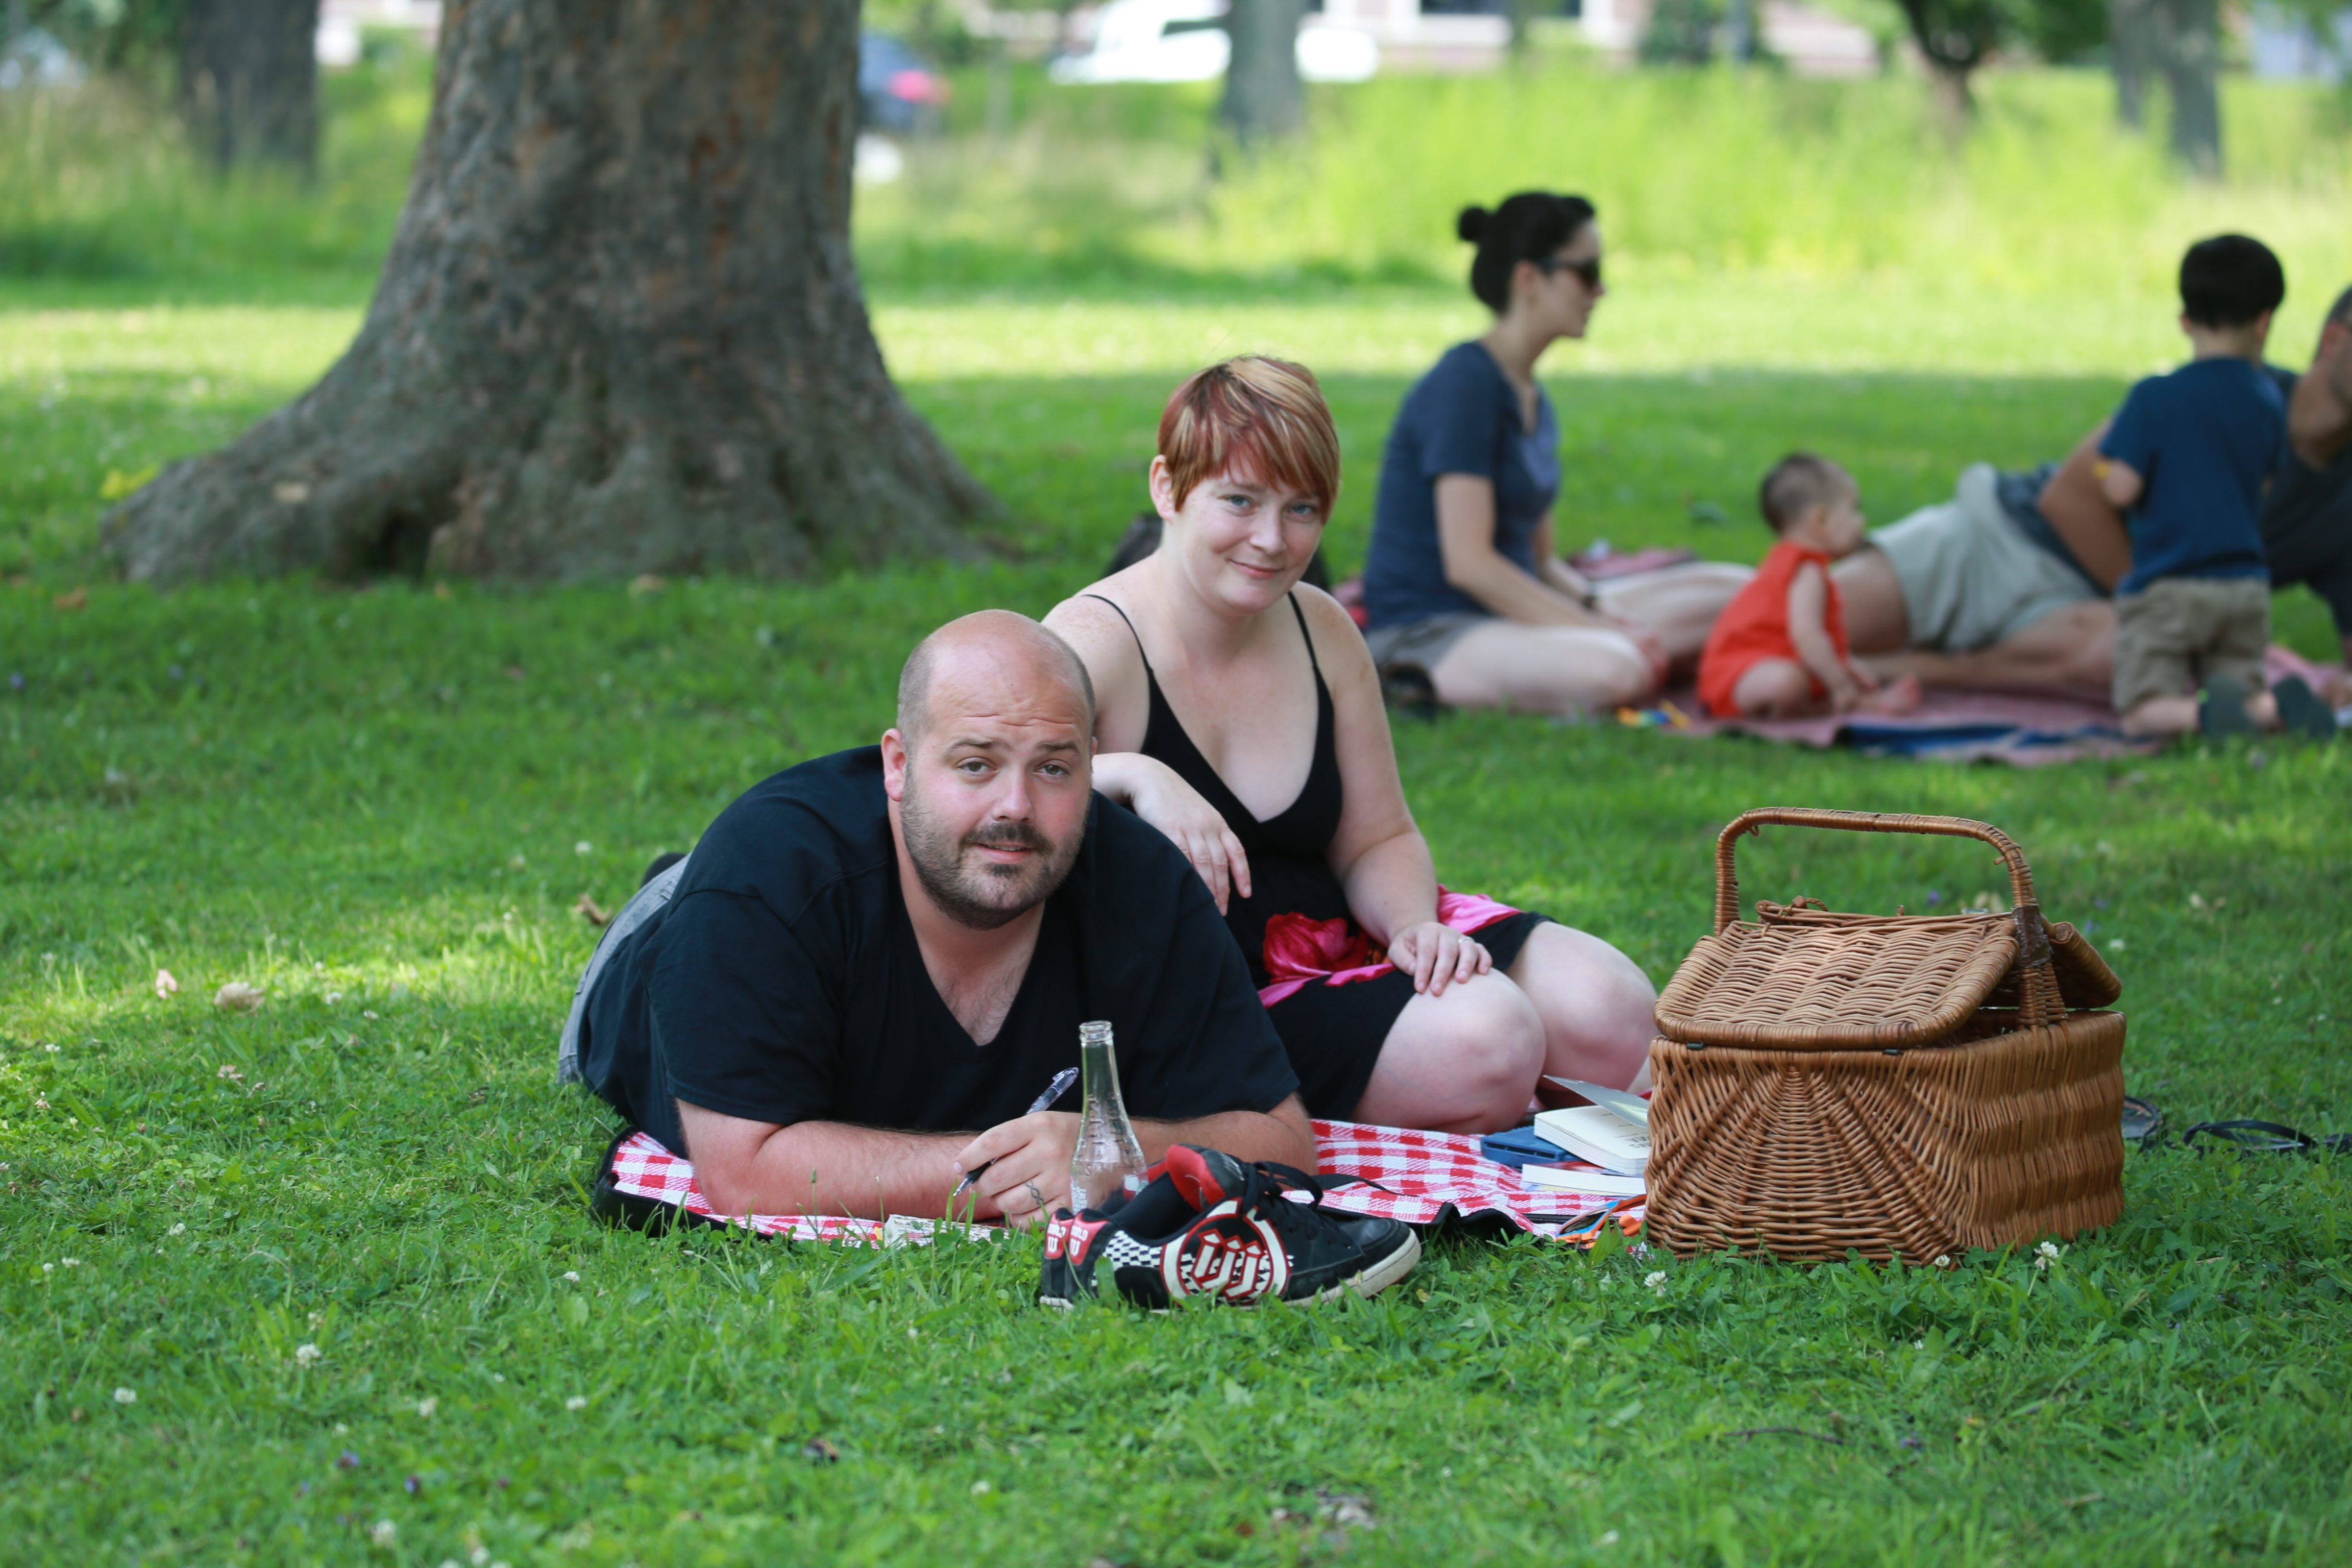 Tim Chavers and his wife, Jacquie, of Lockport, are among about 100 people attending a picnic in Delaware Park, followed by a walk for peace, to set the tone for next month's Intune festival.